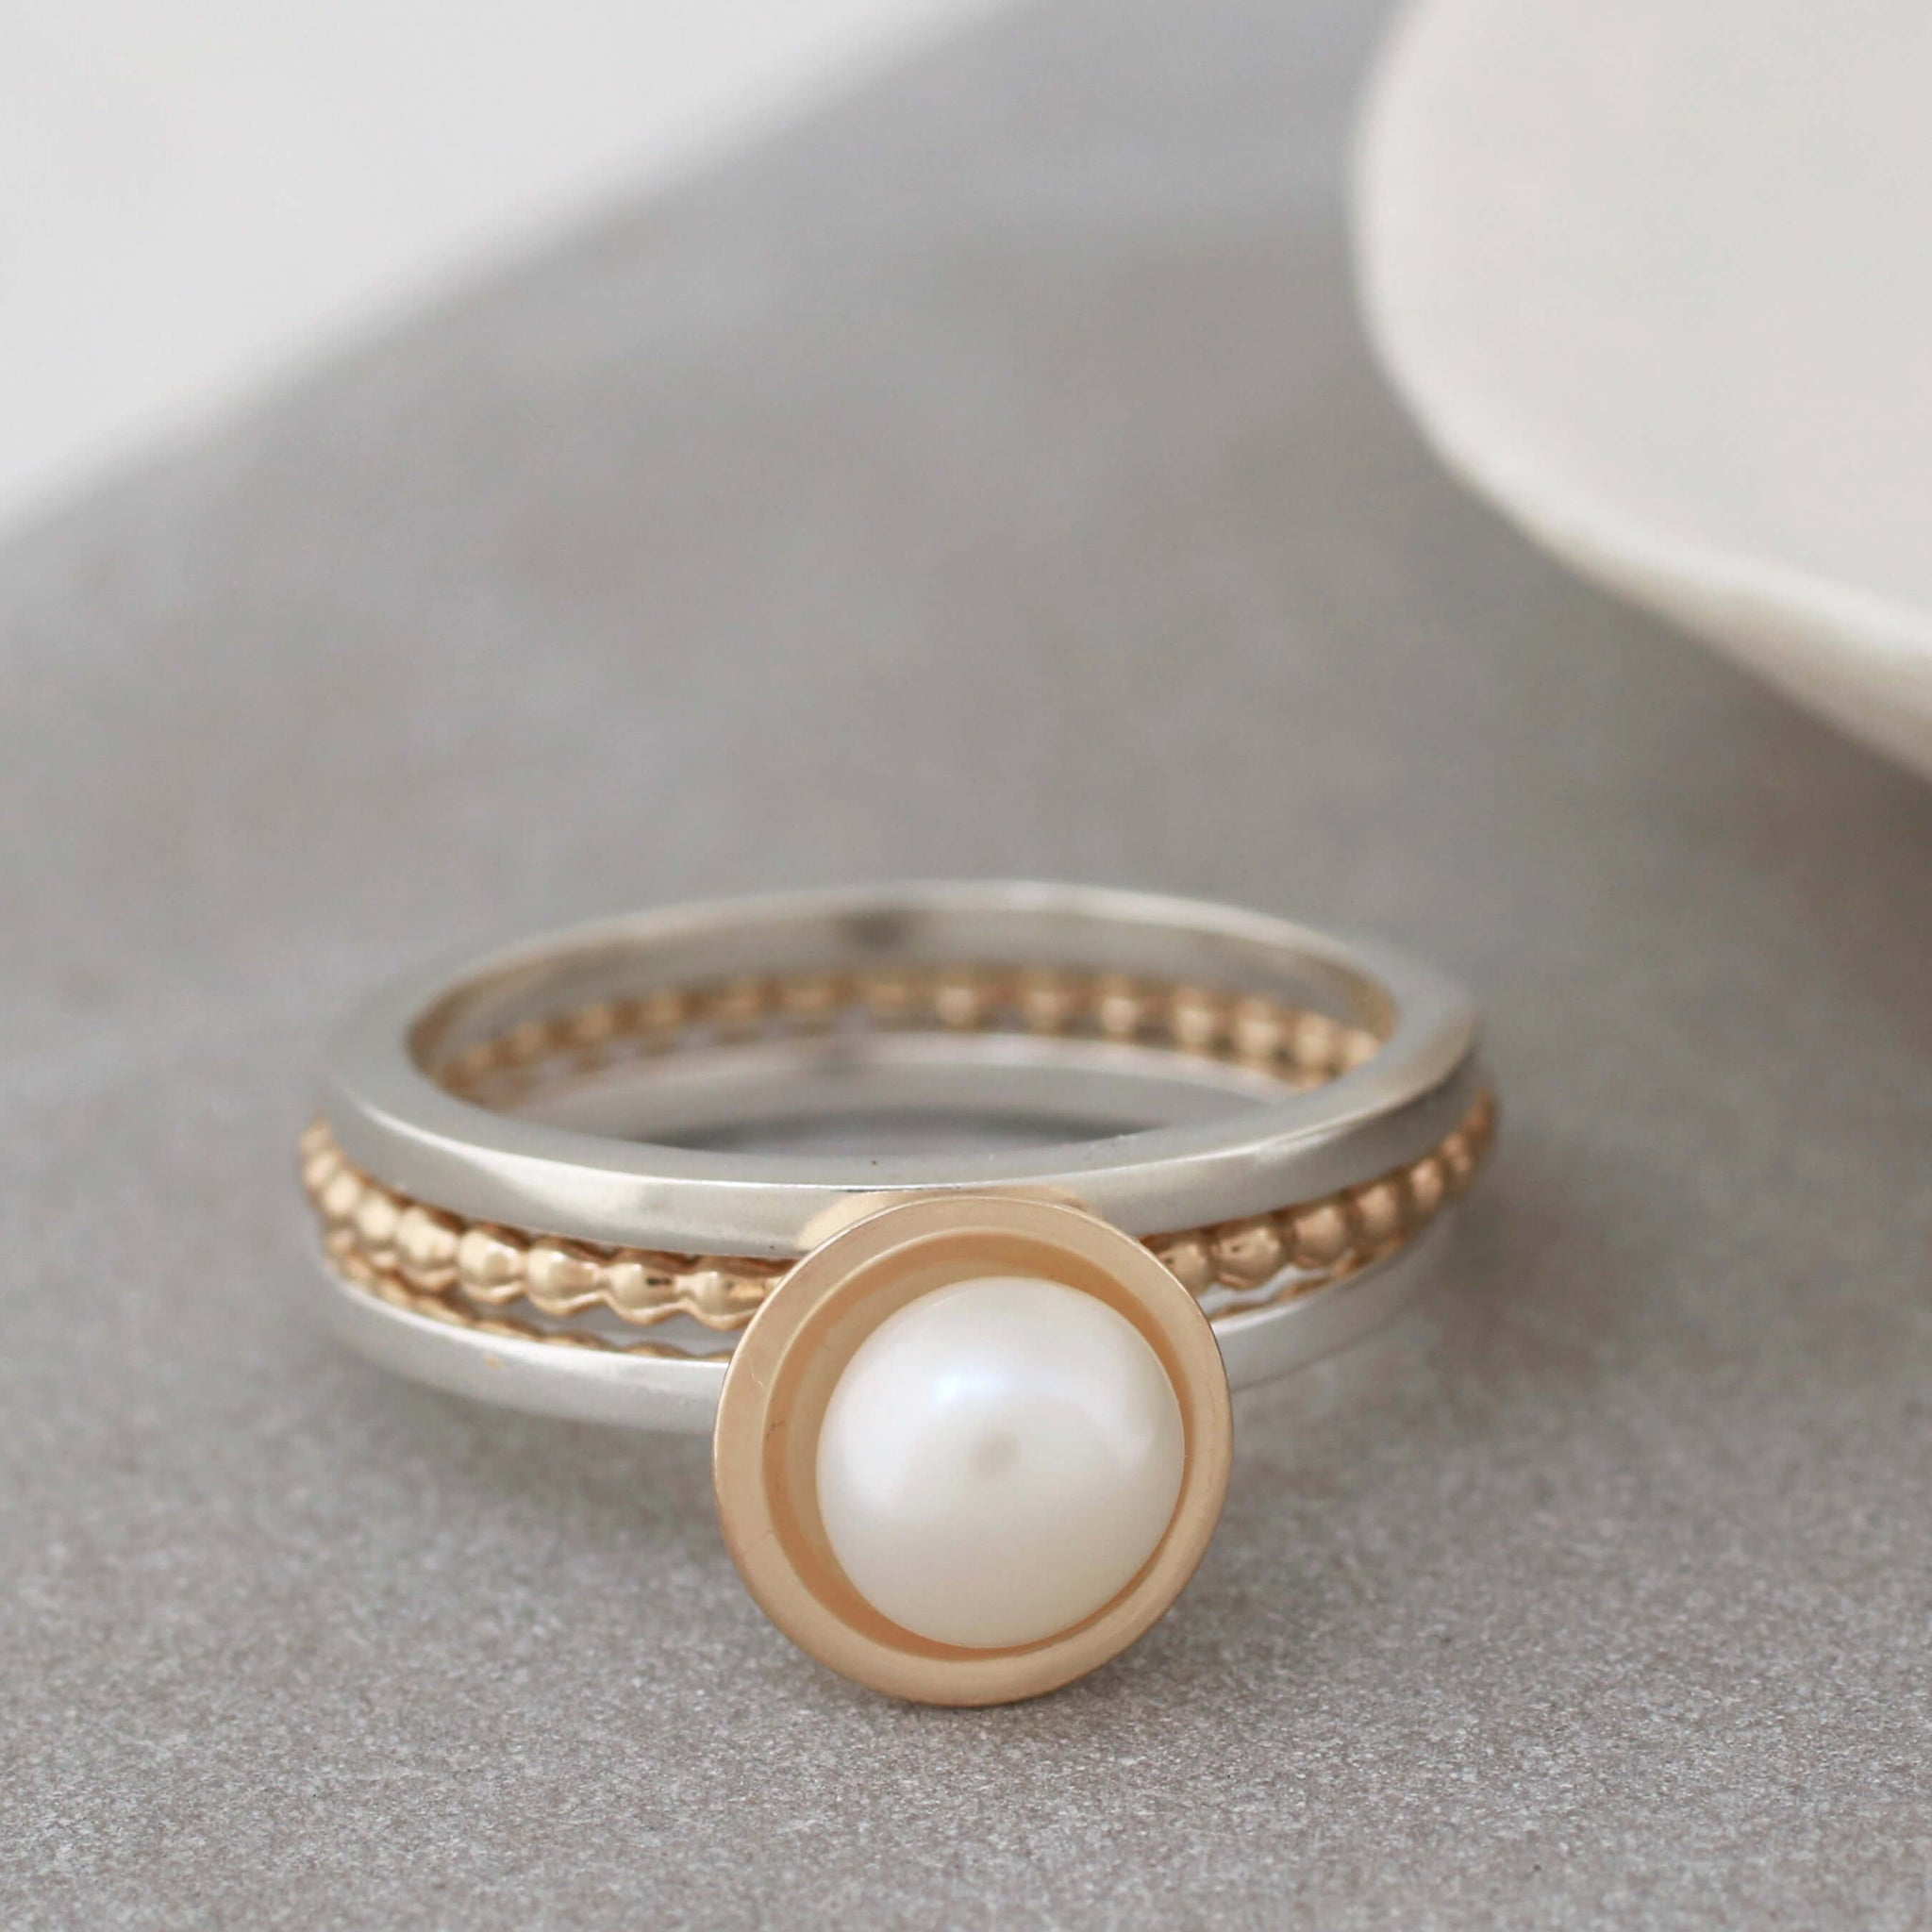 9ct gold dainty rings